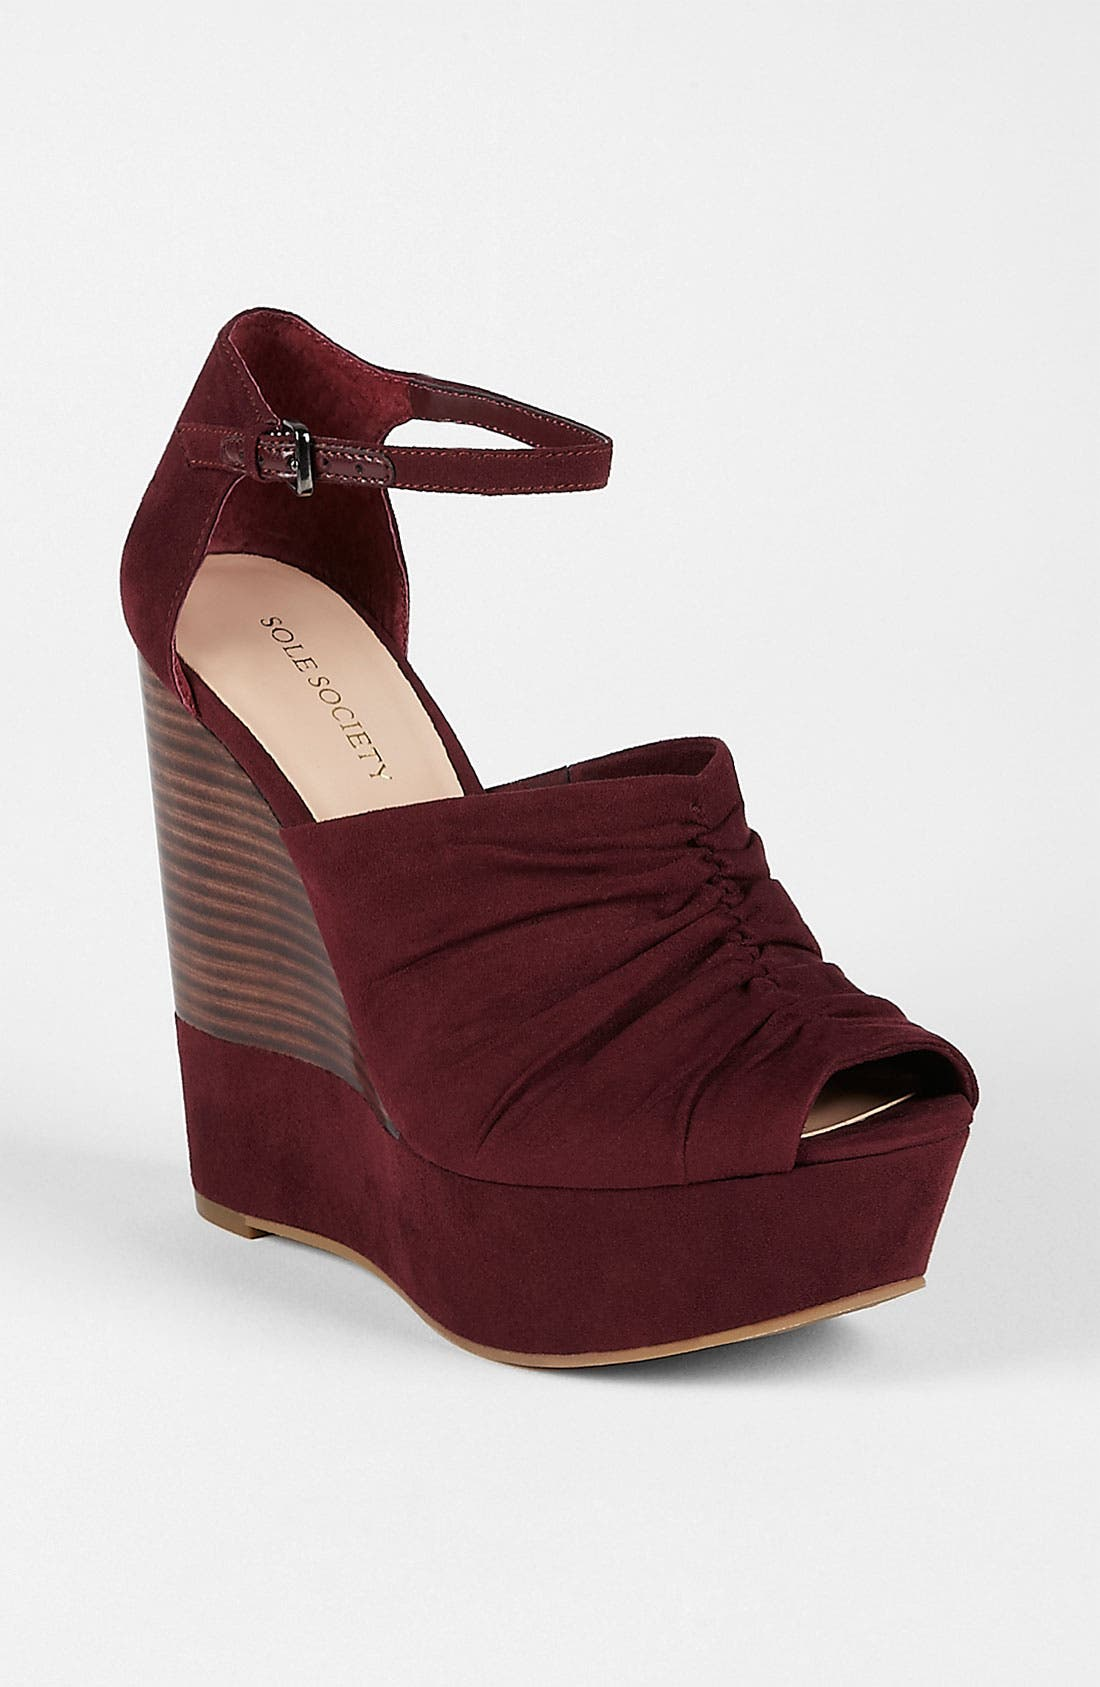 Alternate Image 1 Selected - Sole Society 'Becca' Wedge Sandal (Online Exclusive)